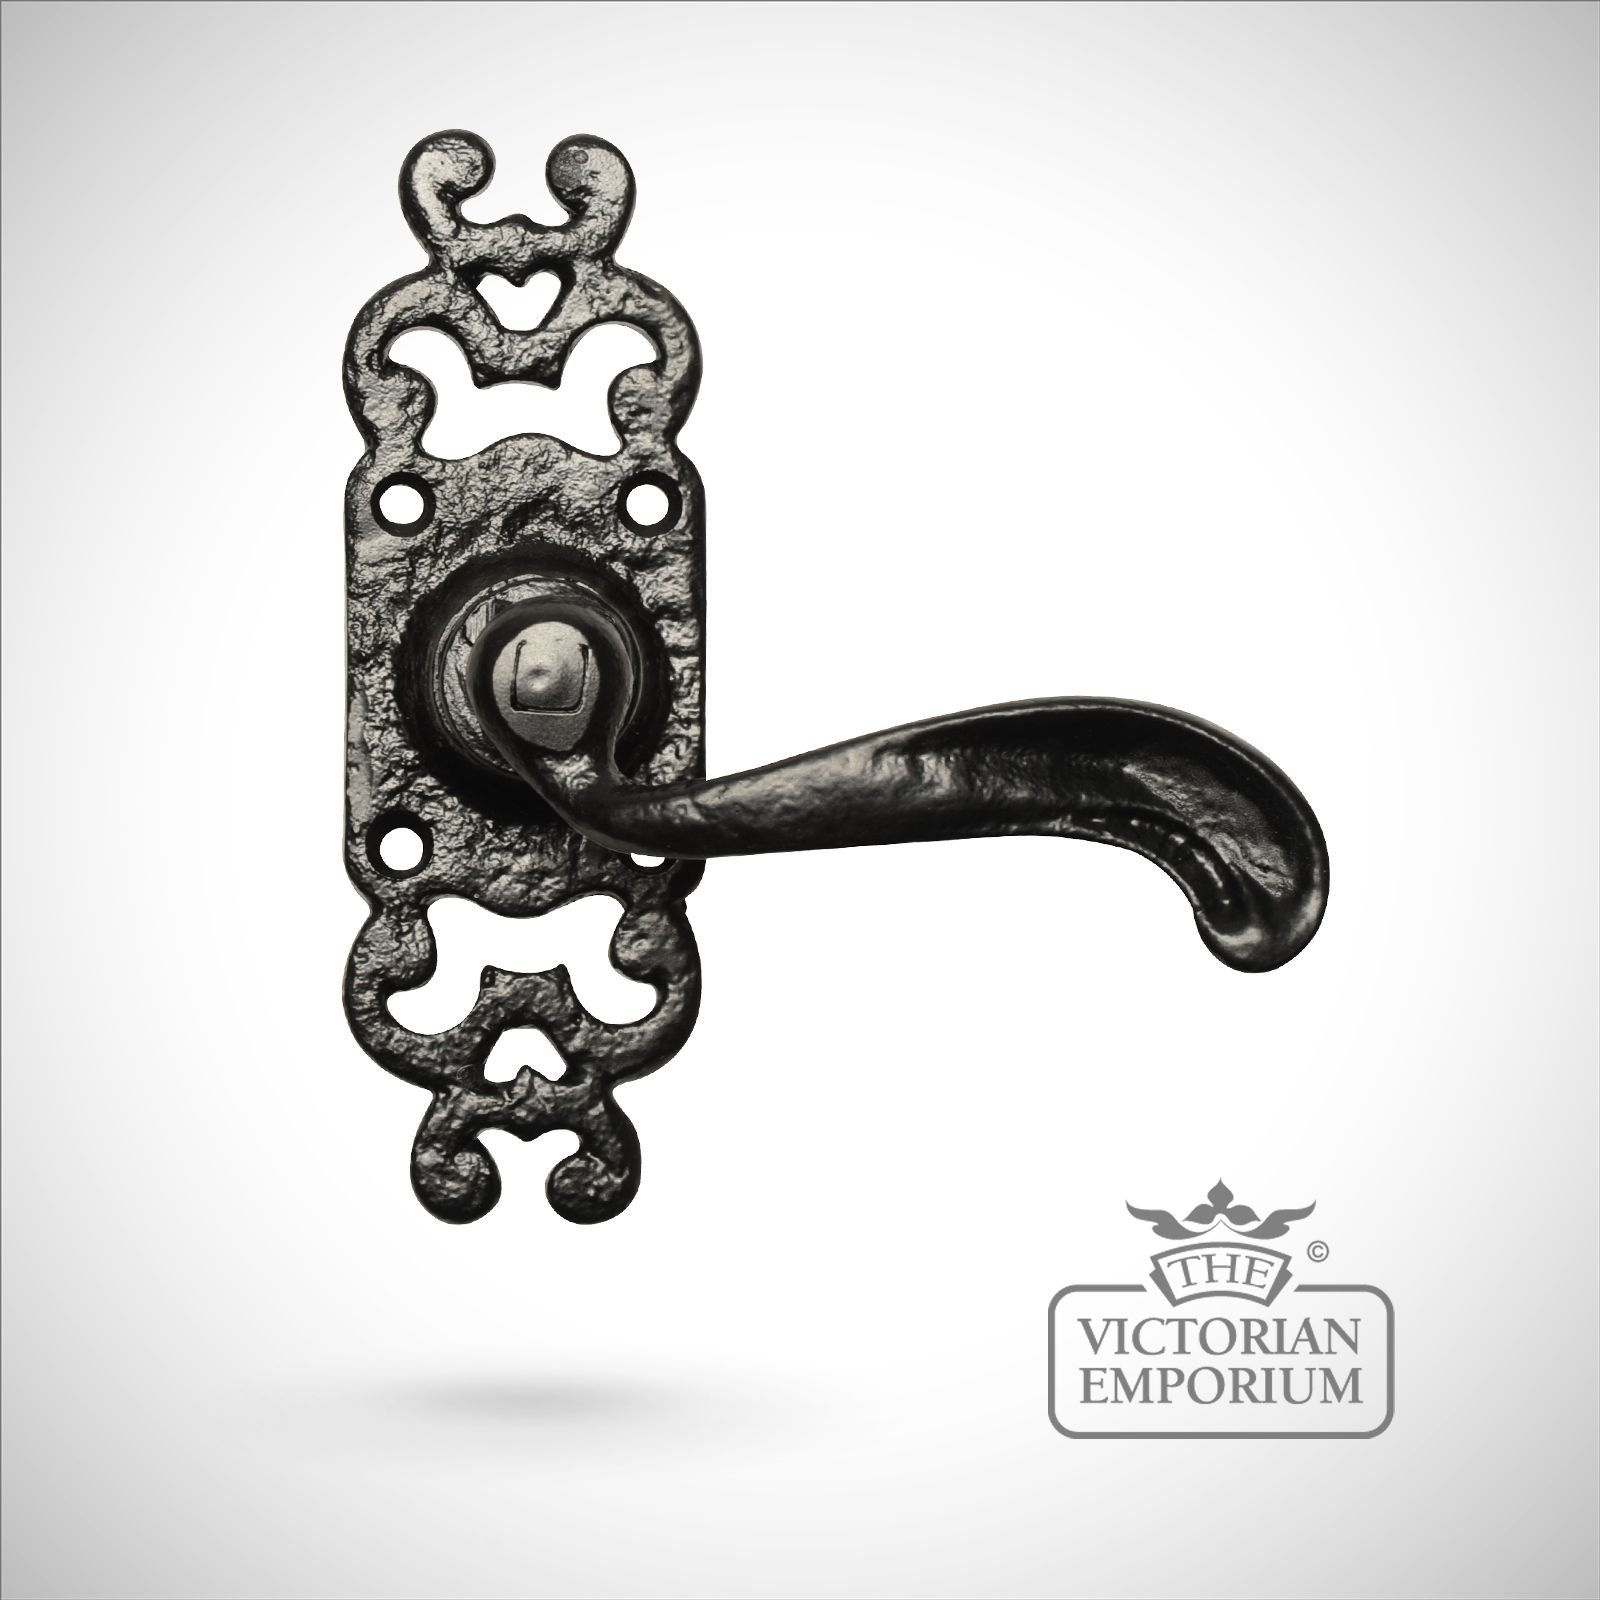 Highly Decorative Black Iron Handcrafted Door Handle